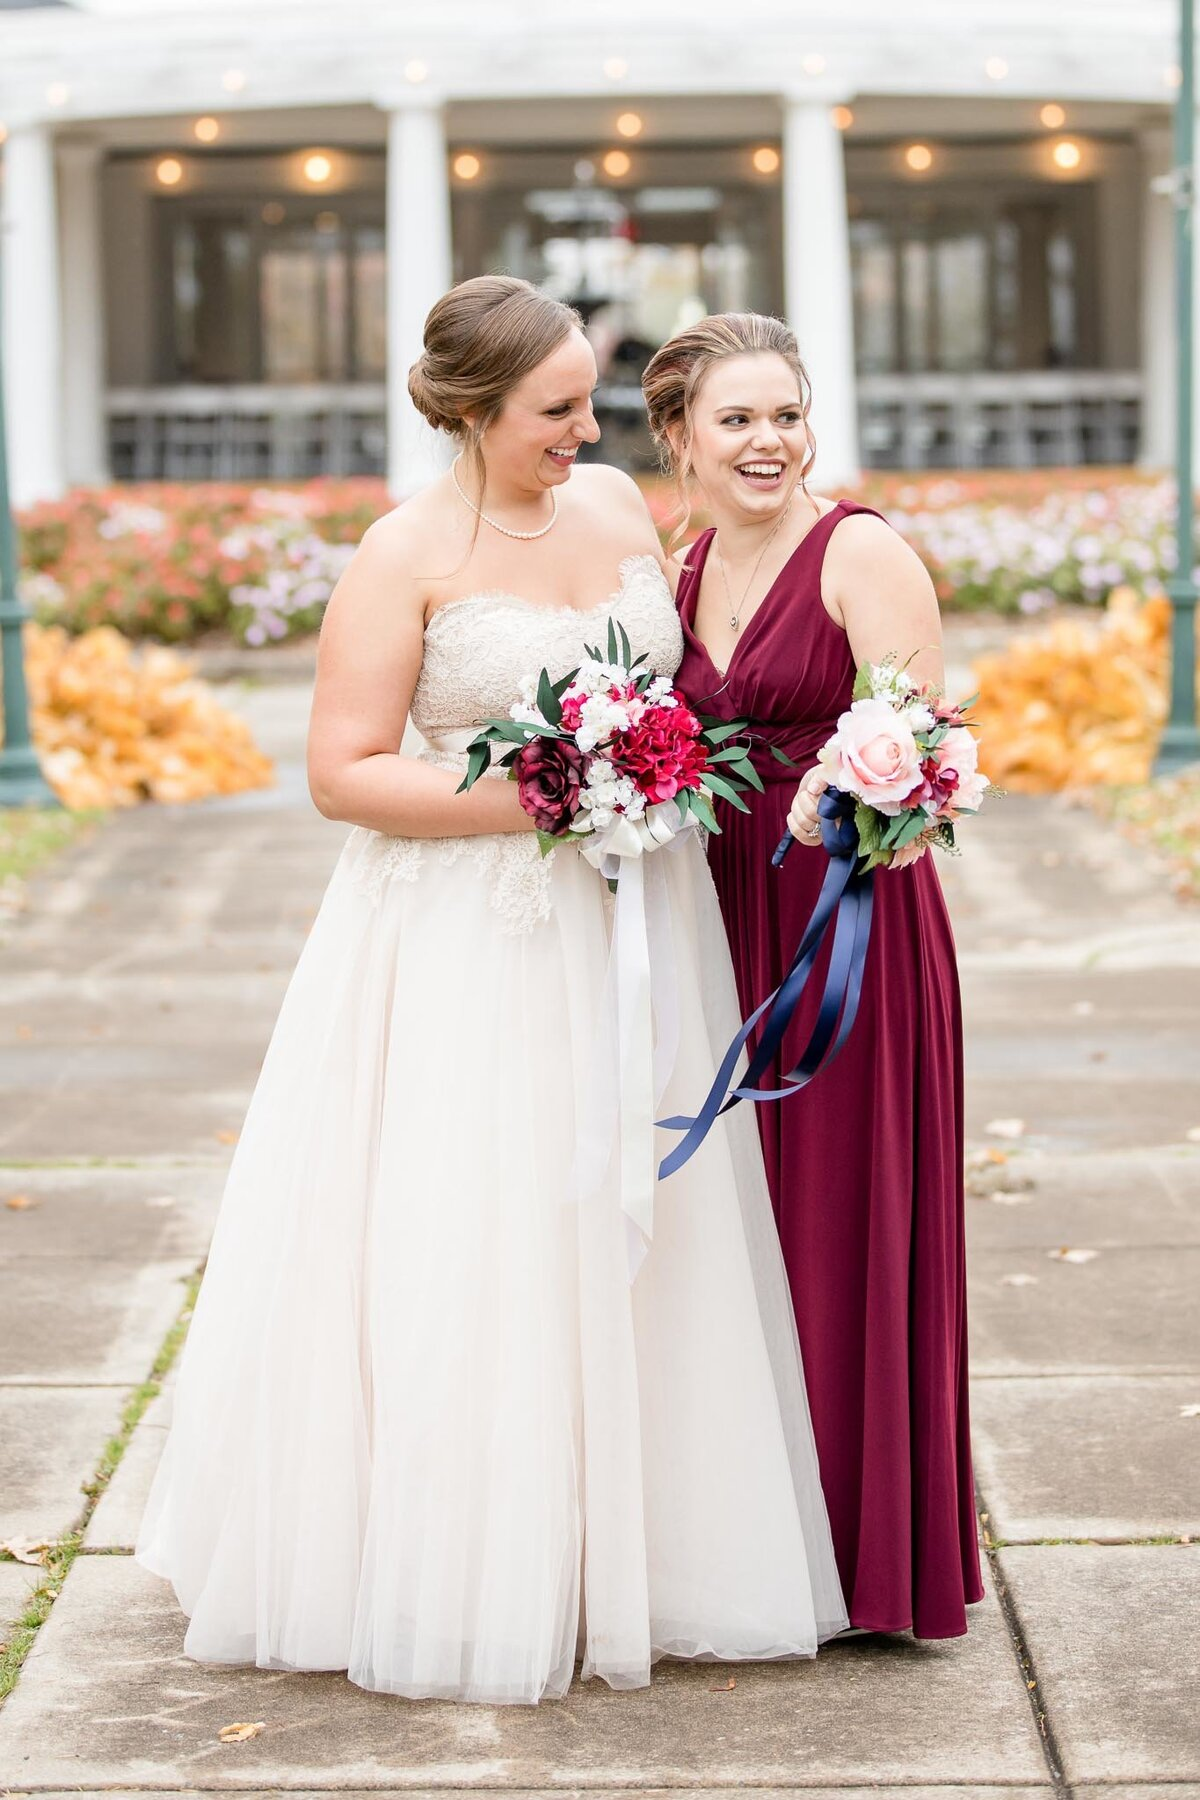 Rachel-Elise-Photography-Syracuse-New-York-Wedding-Photographer-71